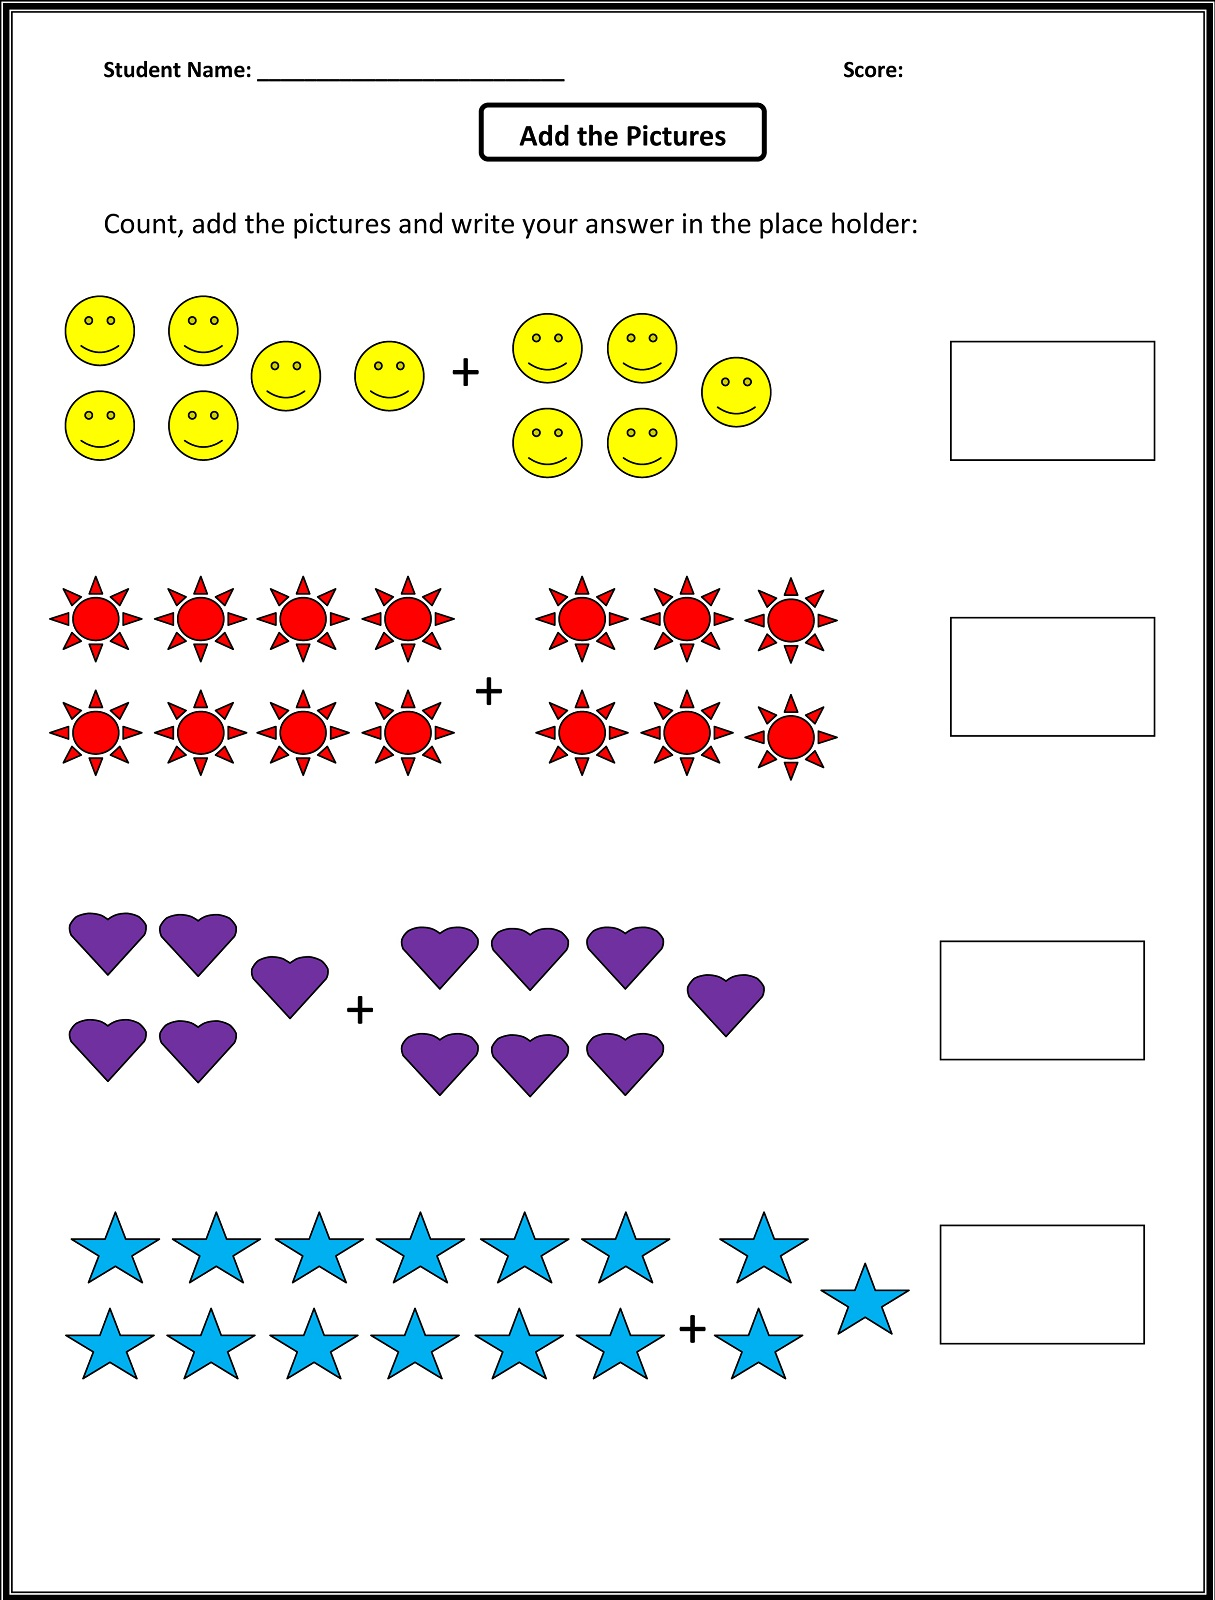 Worksheets For 1st Grade Math